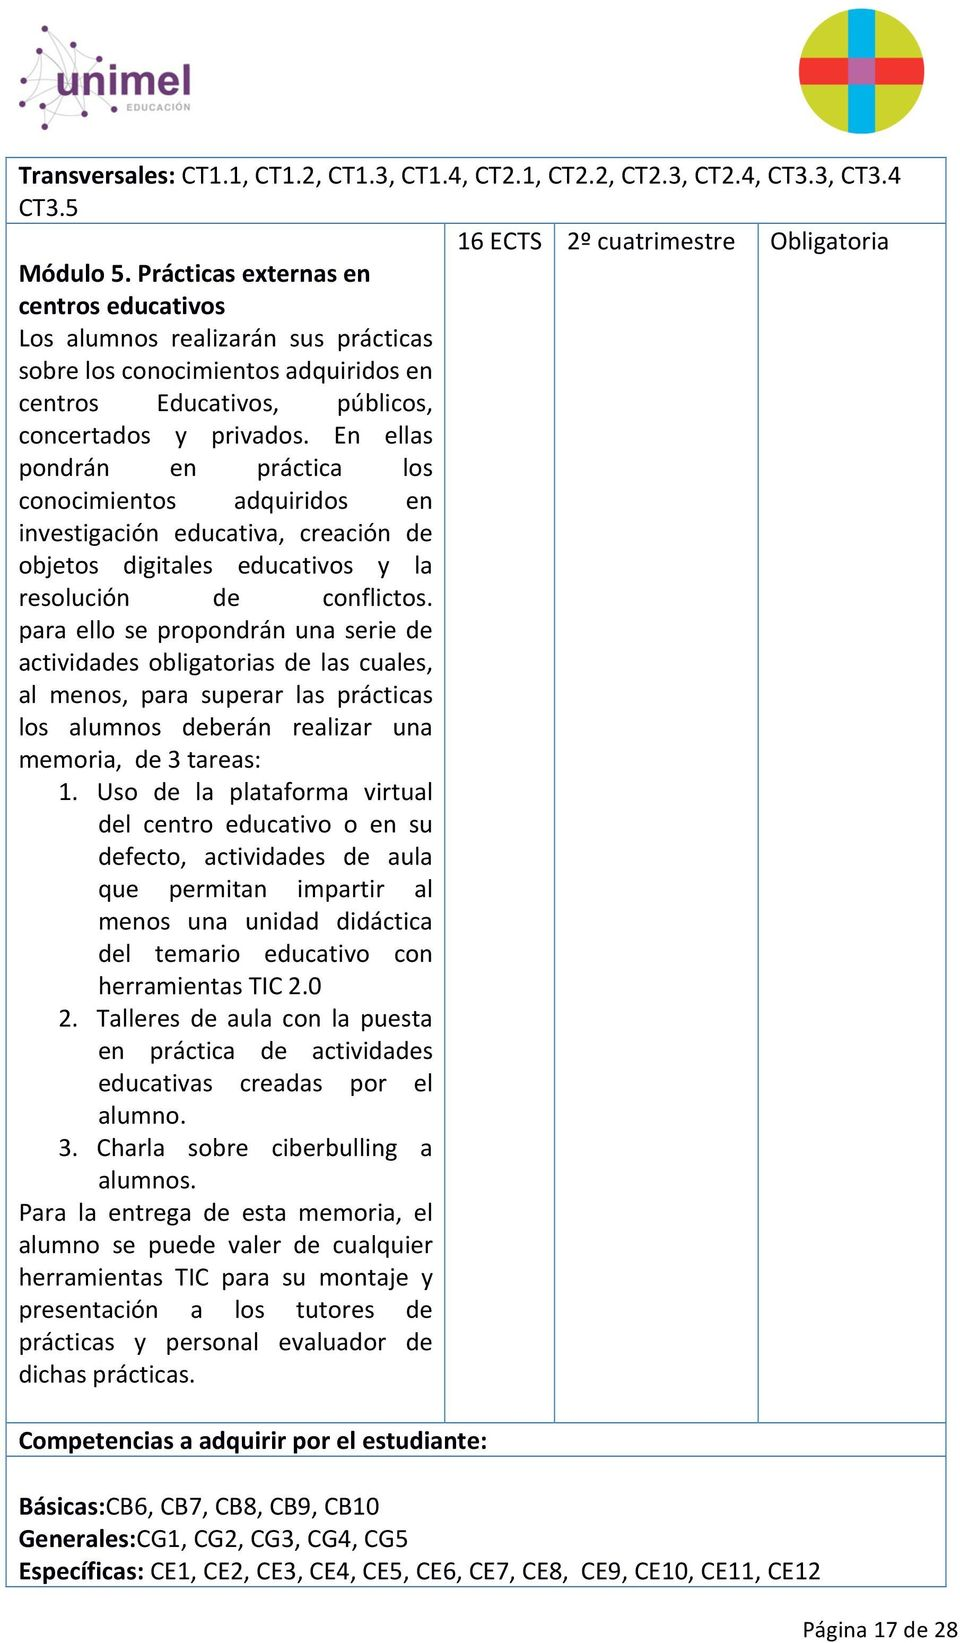 En ellas pondrán en práctica los conocimientos adquiridos en investigación educativa, creación de objetos digitales educativos y la resolución de conflictos.